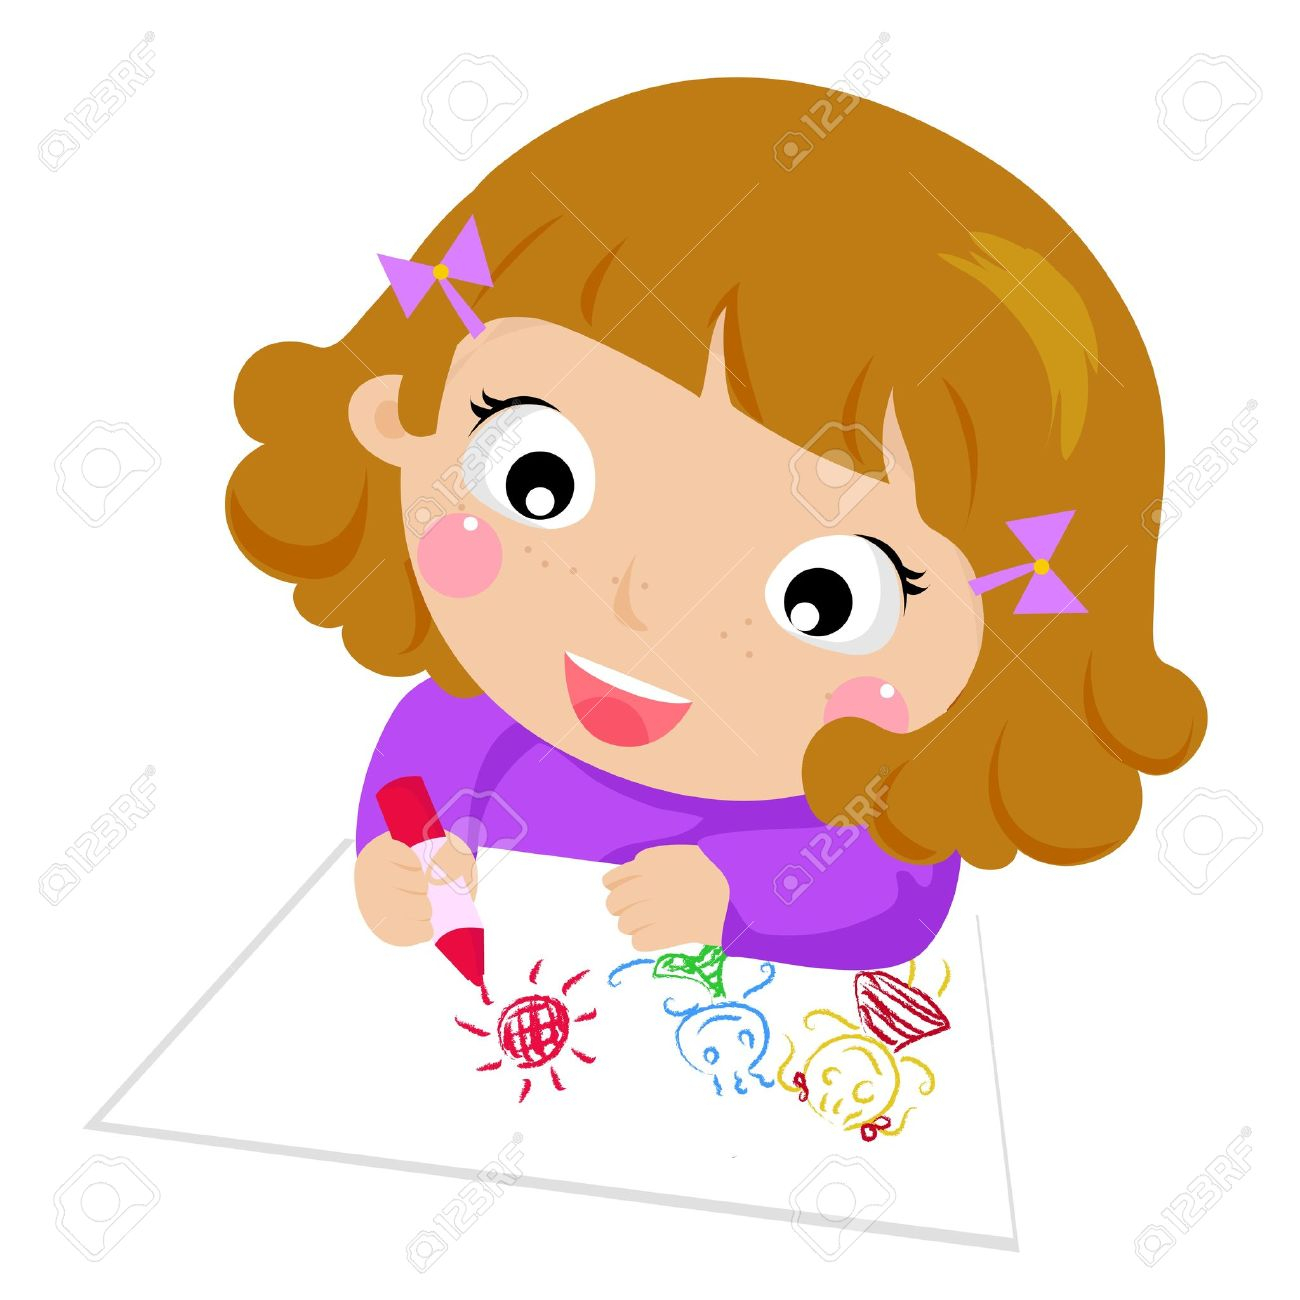 Kids drawing pictures clipart vector free stock Kids Drawing Clipart | Free download best Kids Drawing ... vector free stock